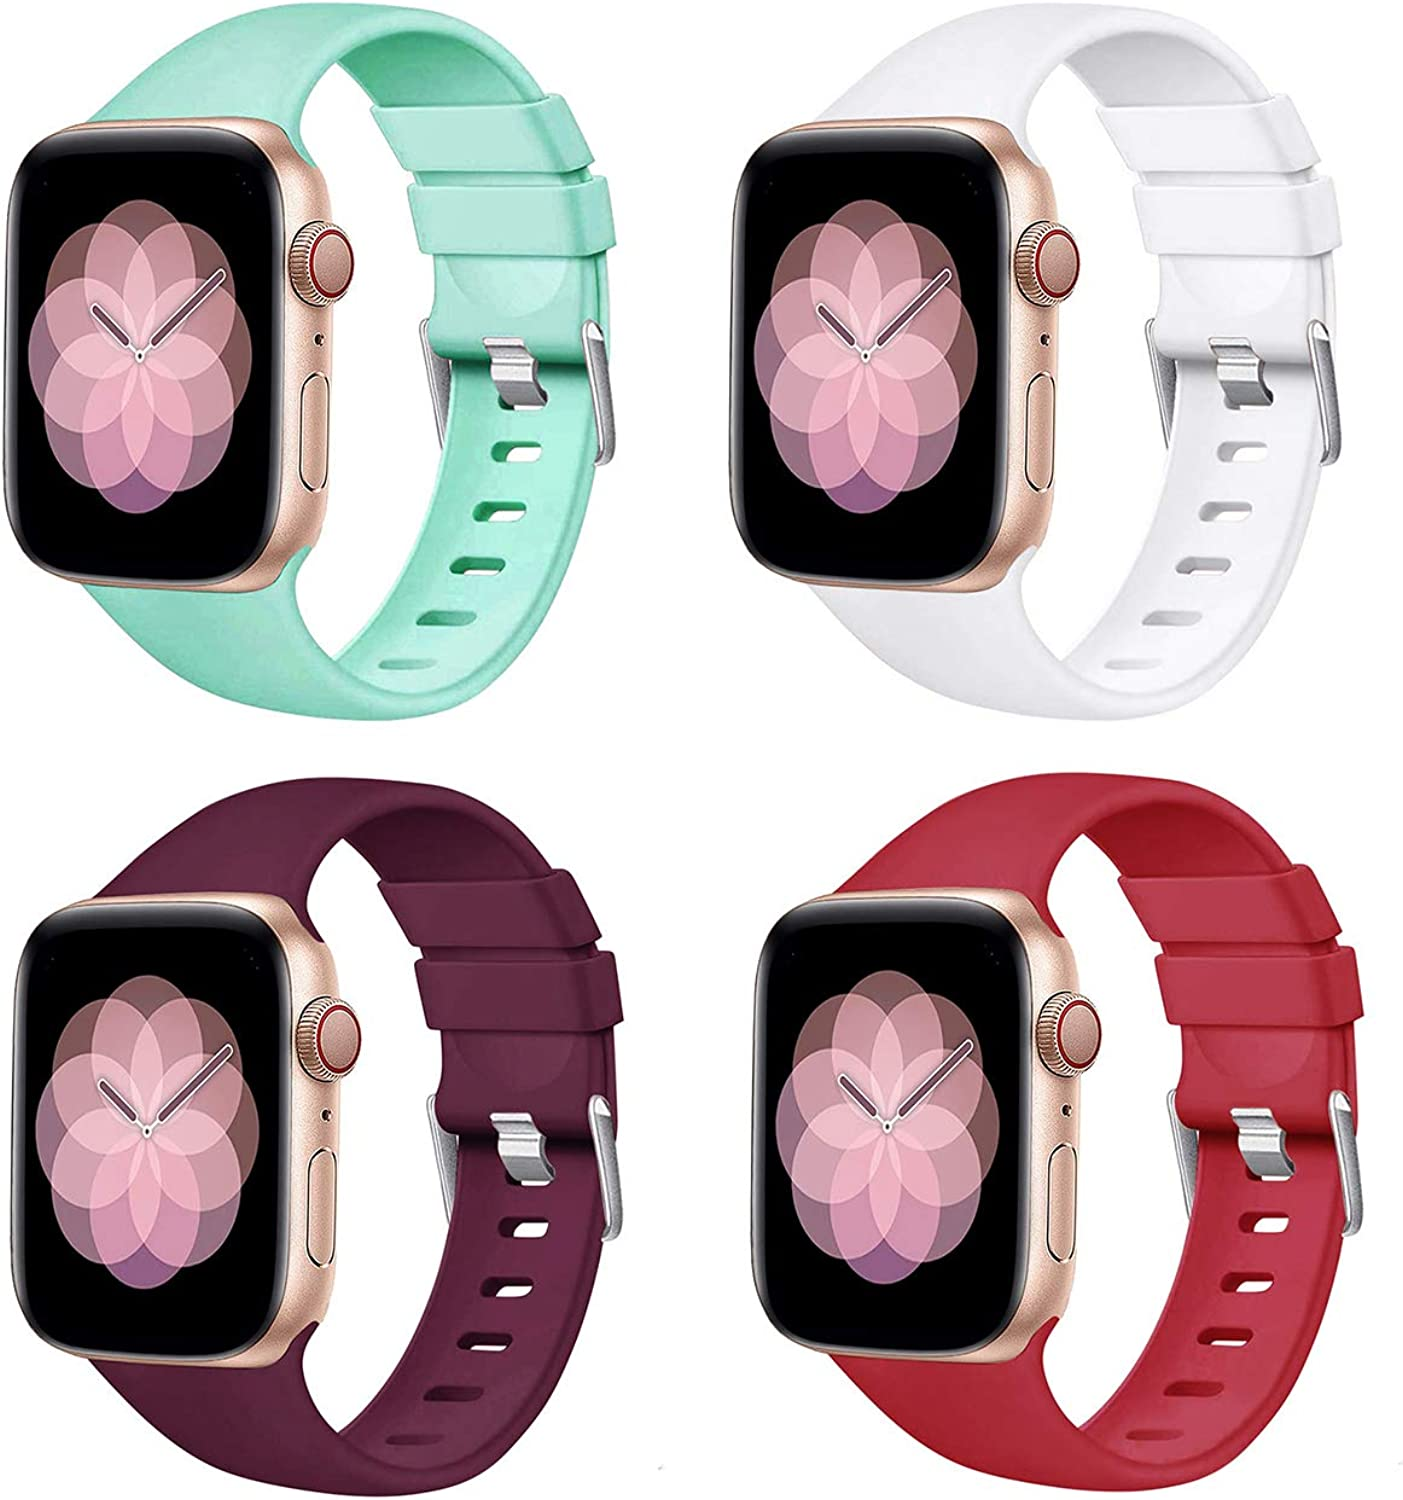 PROSRAT 4-Pack Bands Compatible with Apple Watch Band 42mm/44mm,Soft Silicone Strap Wristband for iWatch Series SE/6/5/4/3/2/1 men women (Teal/White/Purple/Rose Red, 42mm/44mm)